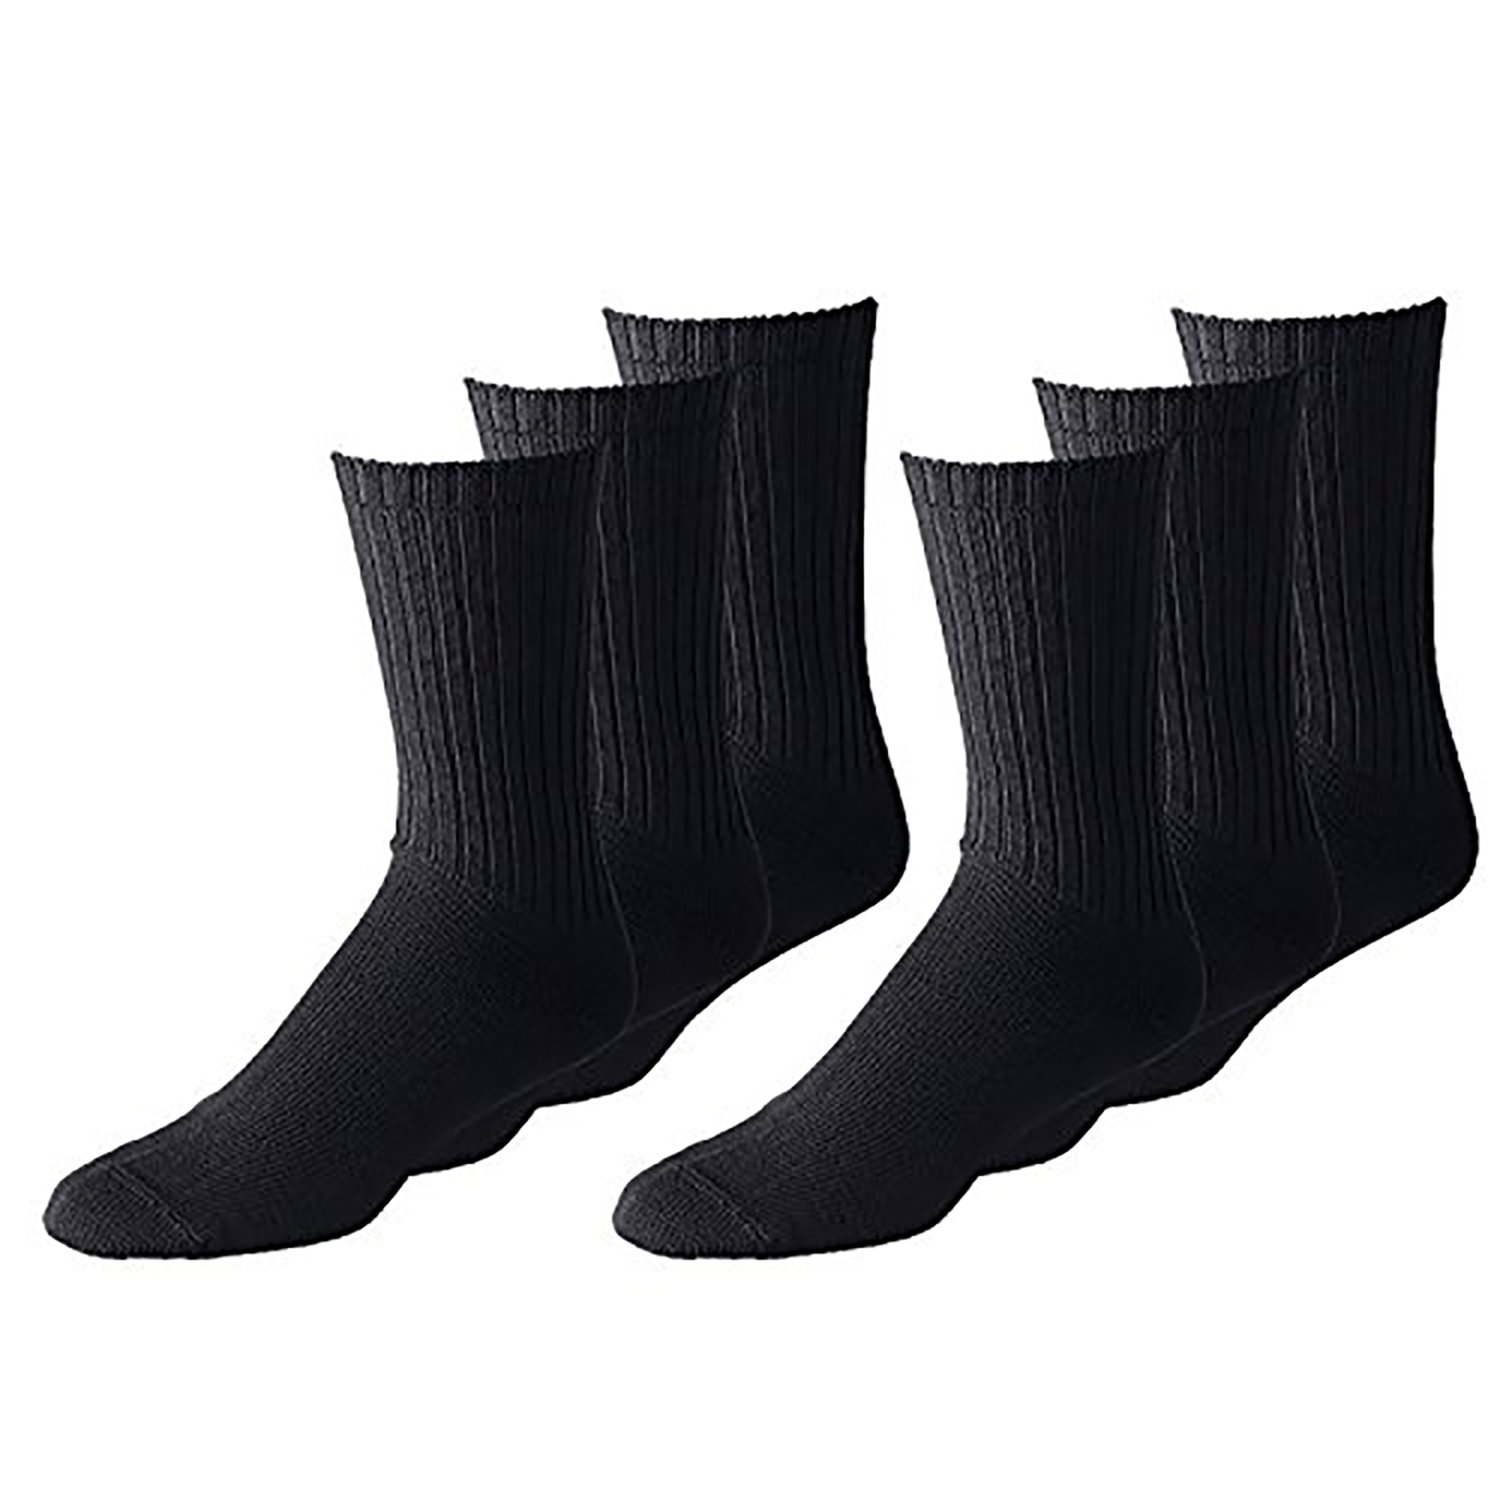 Any Shoe Size 50 Pairs Men or Women Classic and Athletic Crew Socks Bulk Wholesale Packs